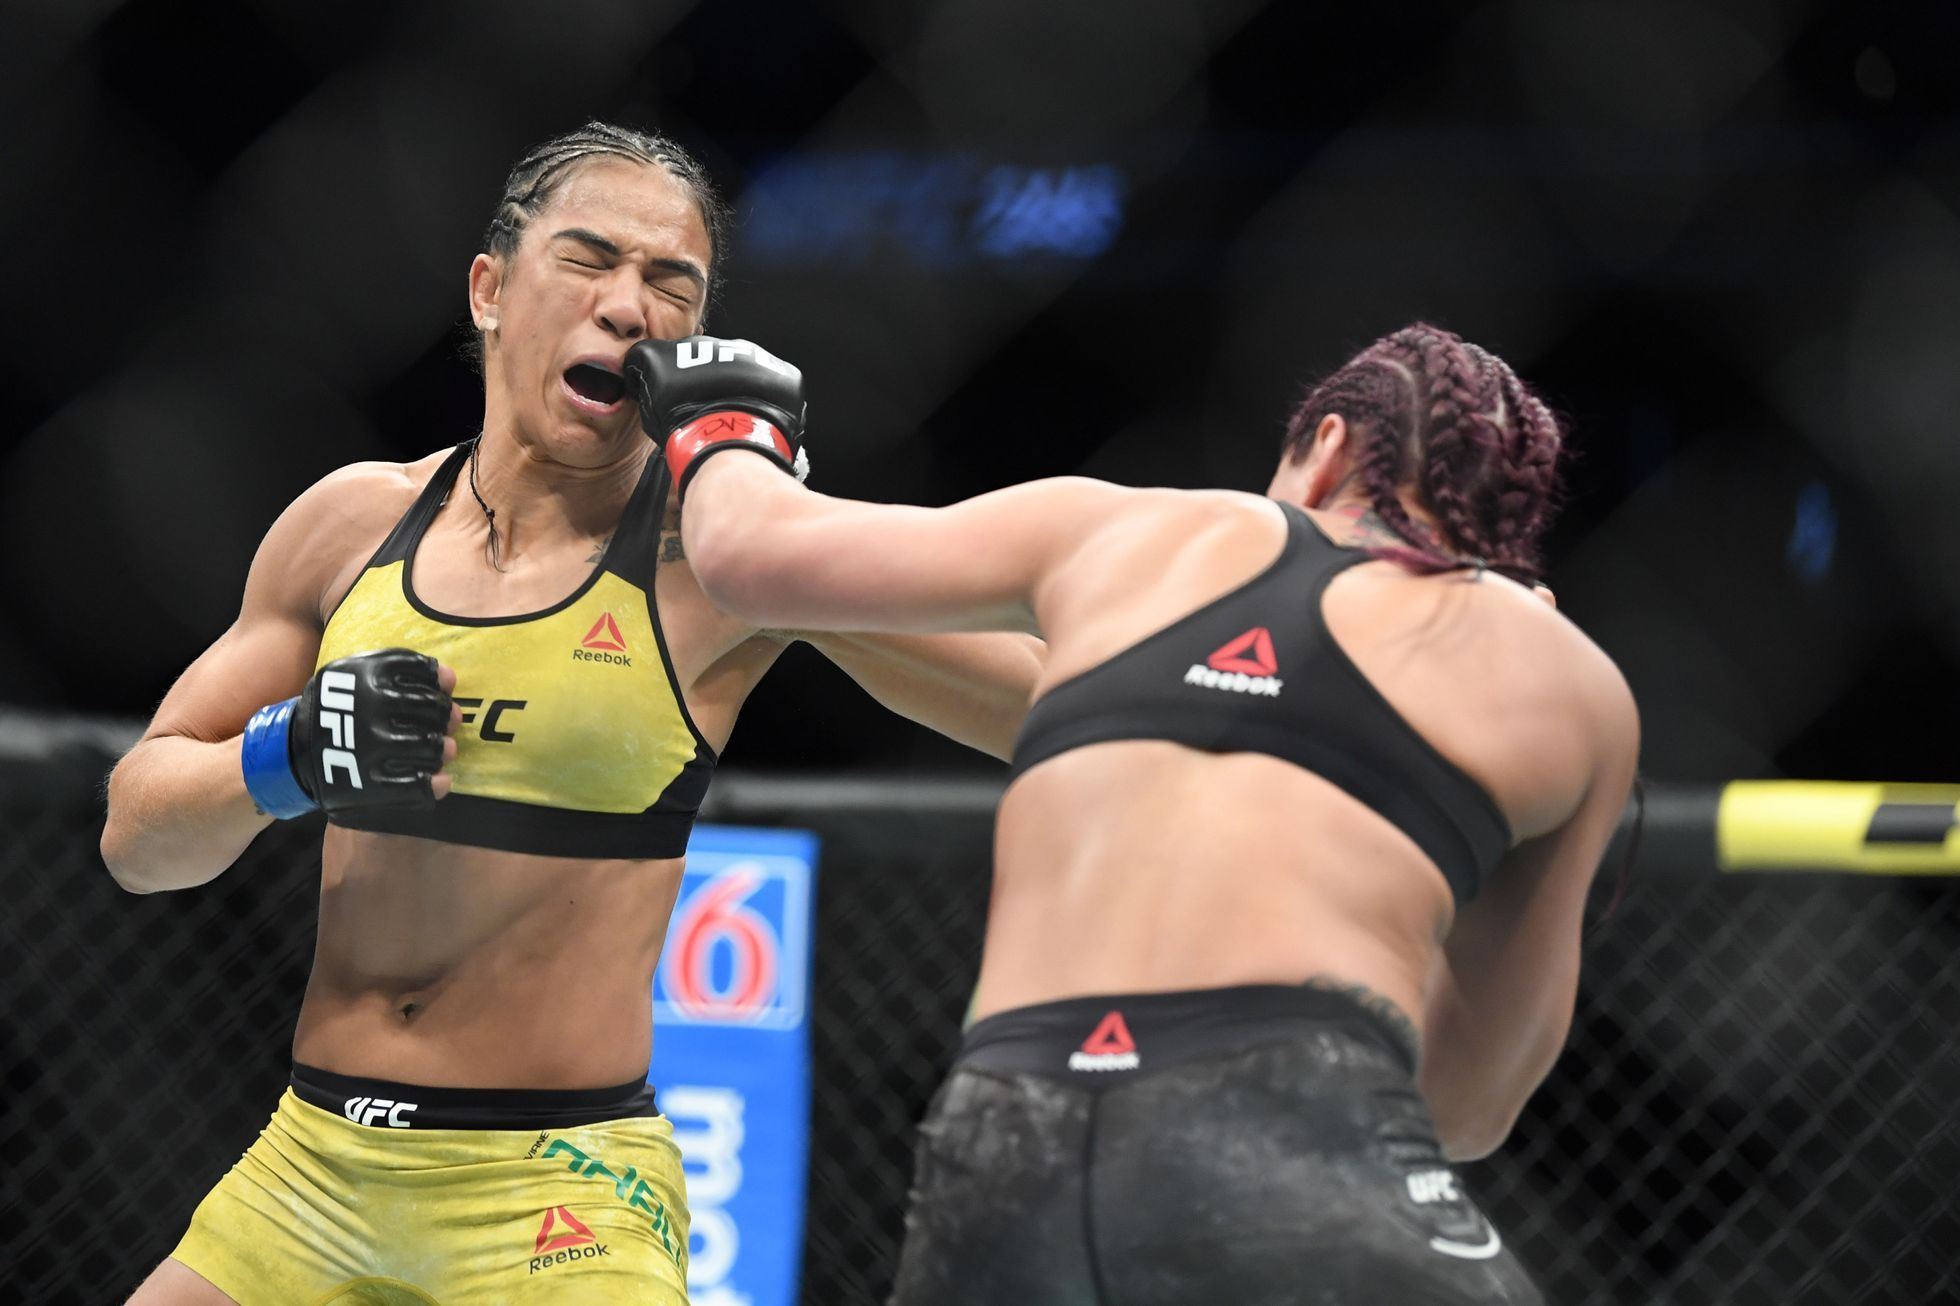 MMA: UFC 245 Eye vs Araujo